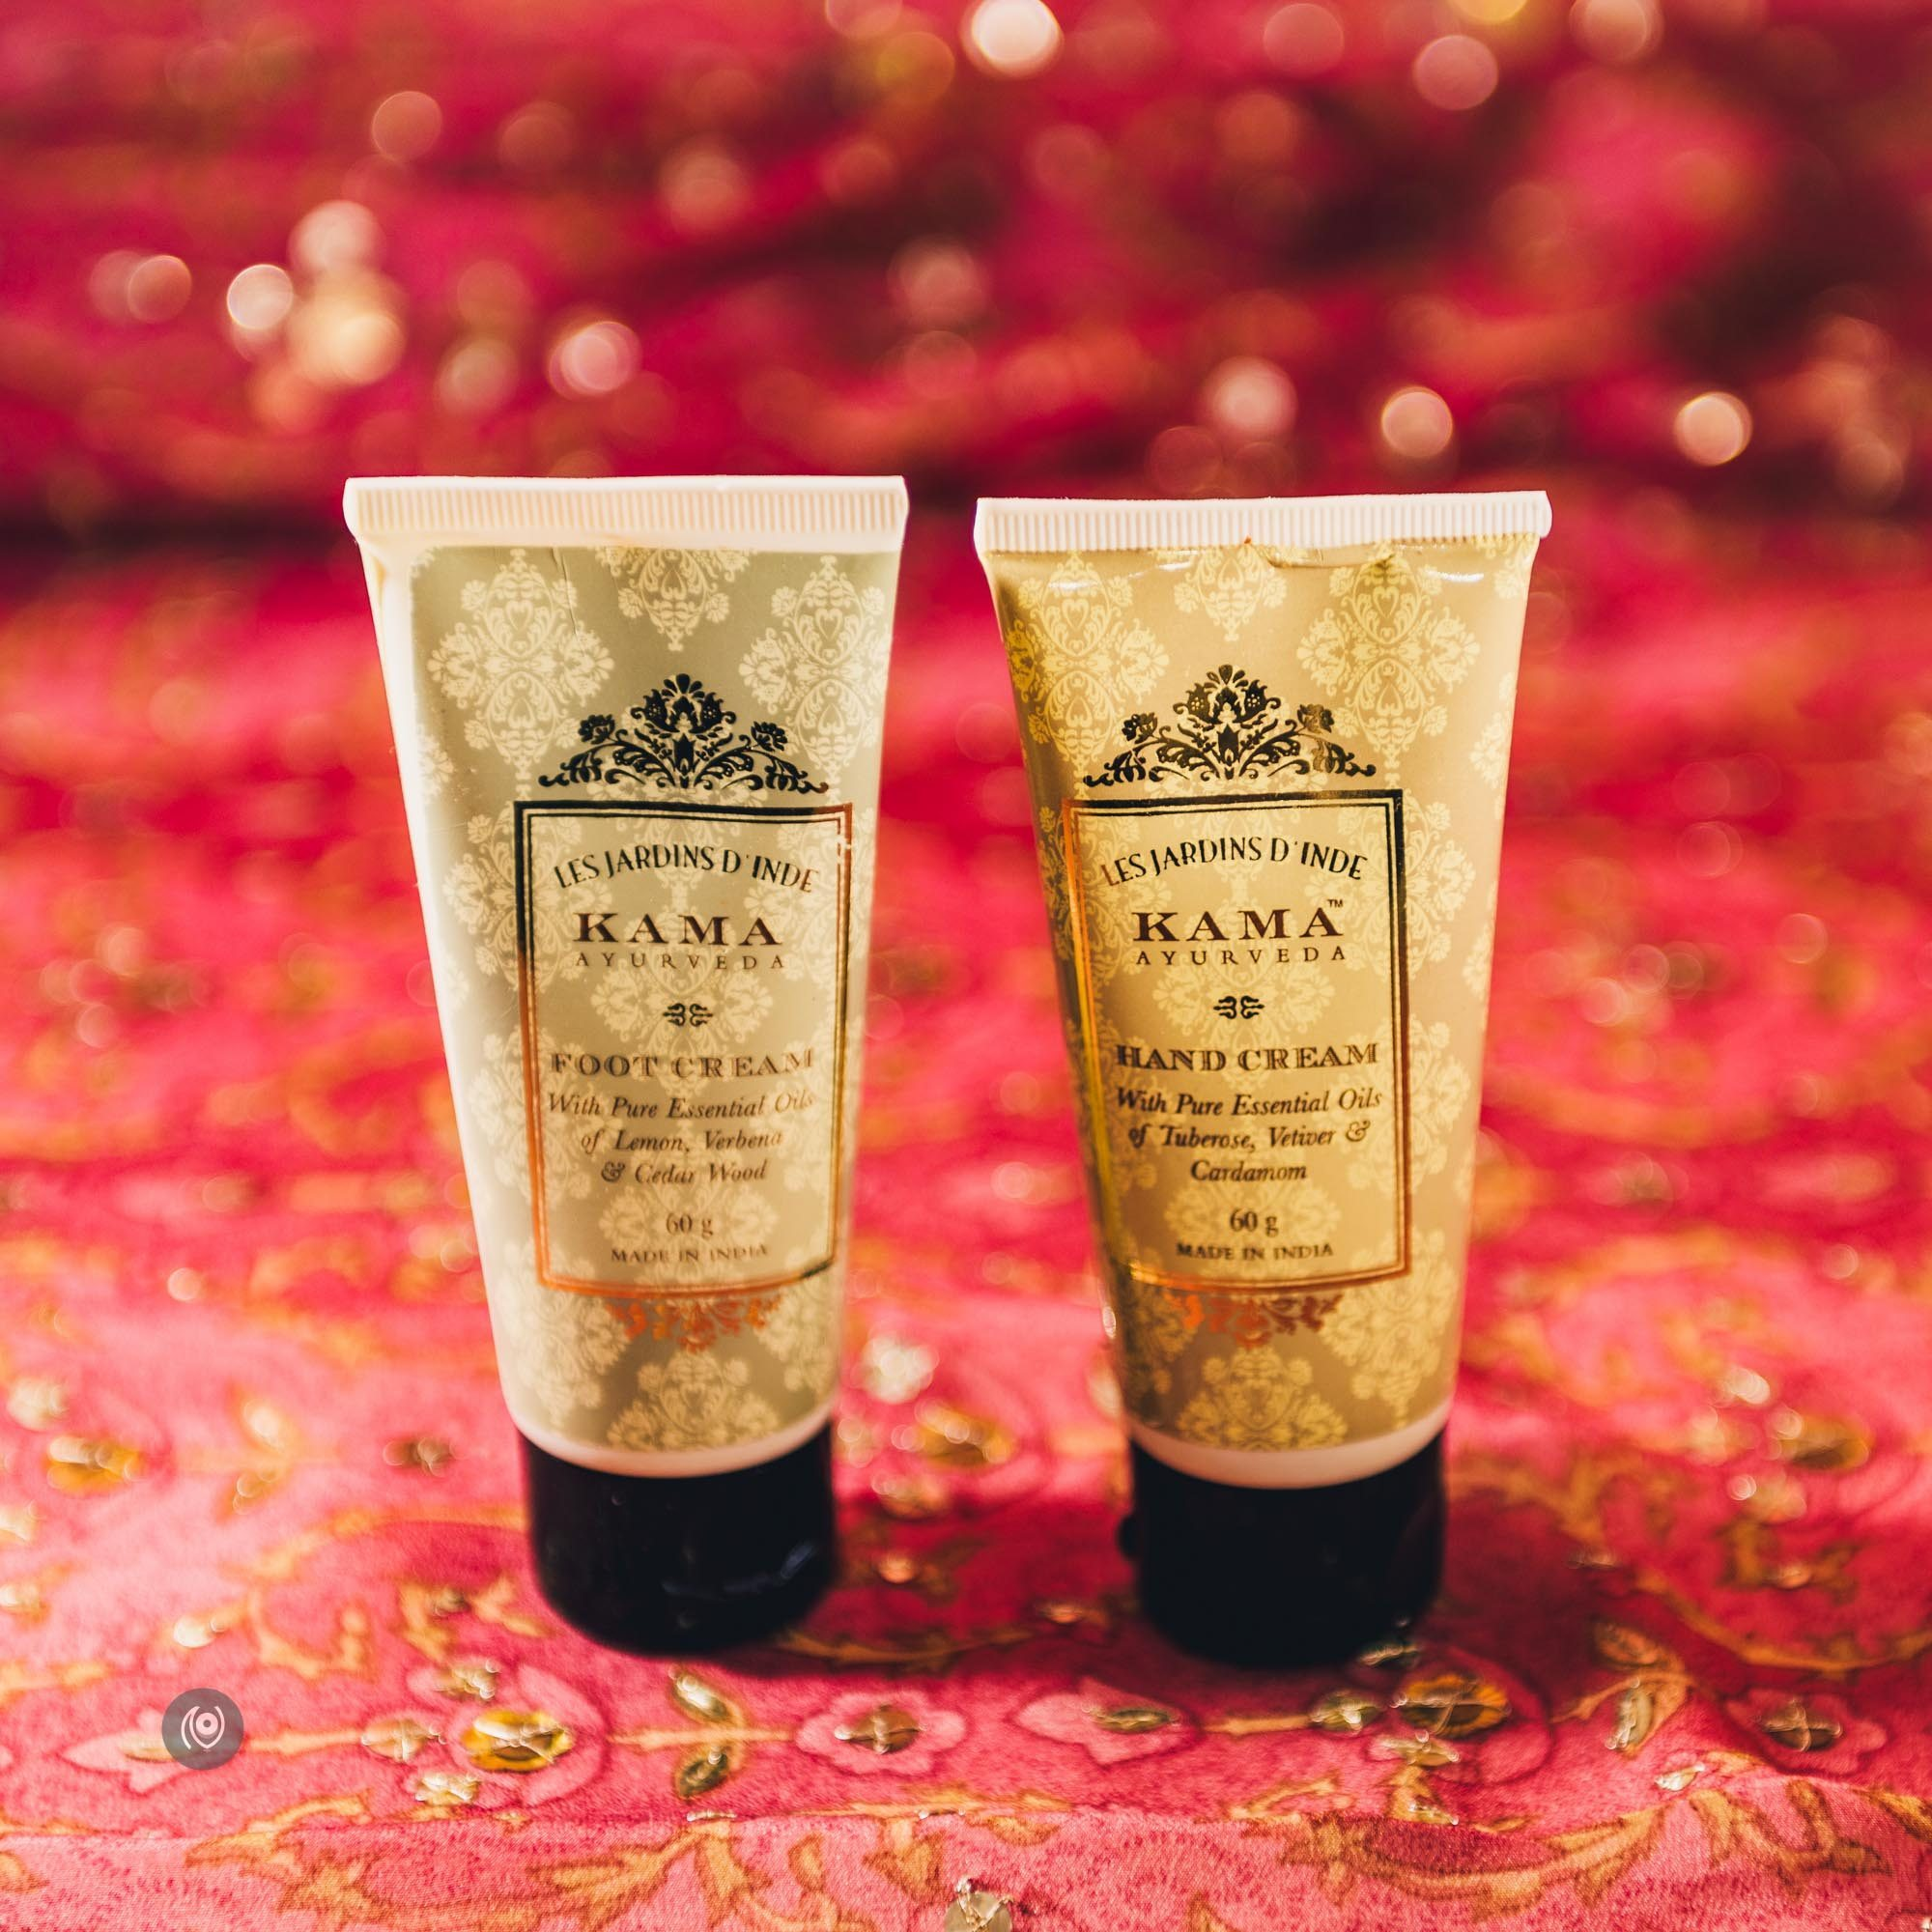 Naina.co-Luxury-Lifestyle-Photographer-Dec15-Kama-Ayurveda-EyesForBeauty-Winter-Care-SinCare-13